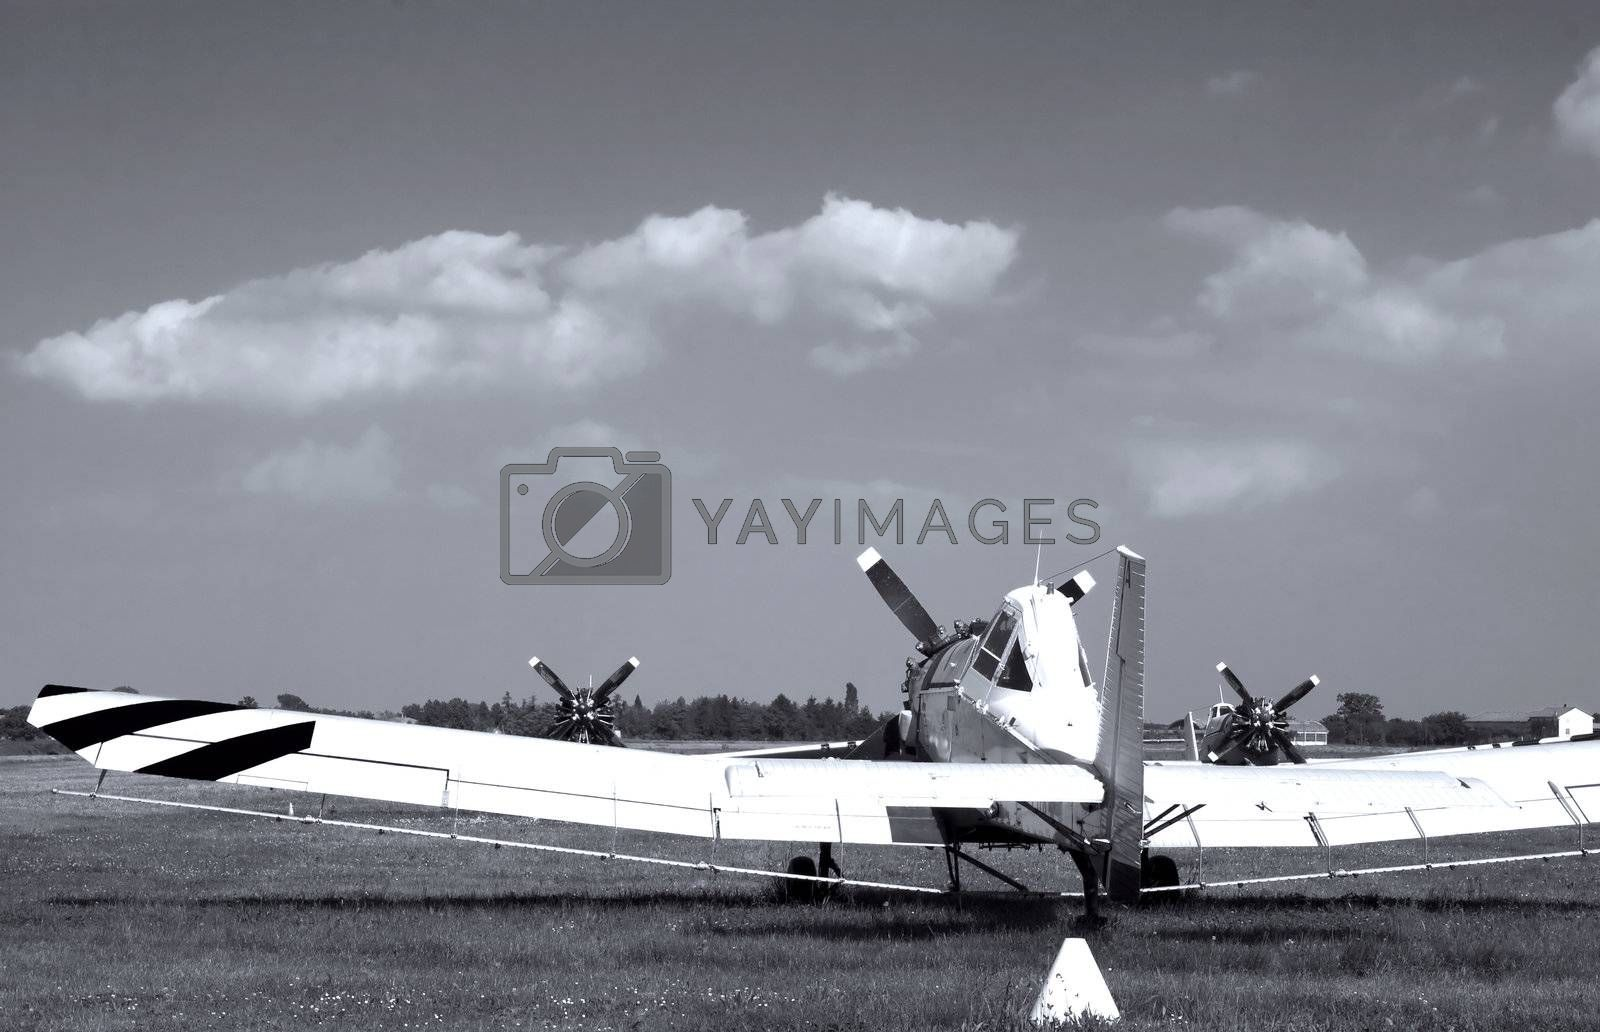 Royalty free image of Old plane by Koufax73